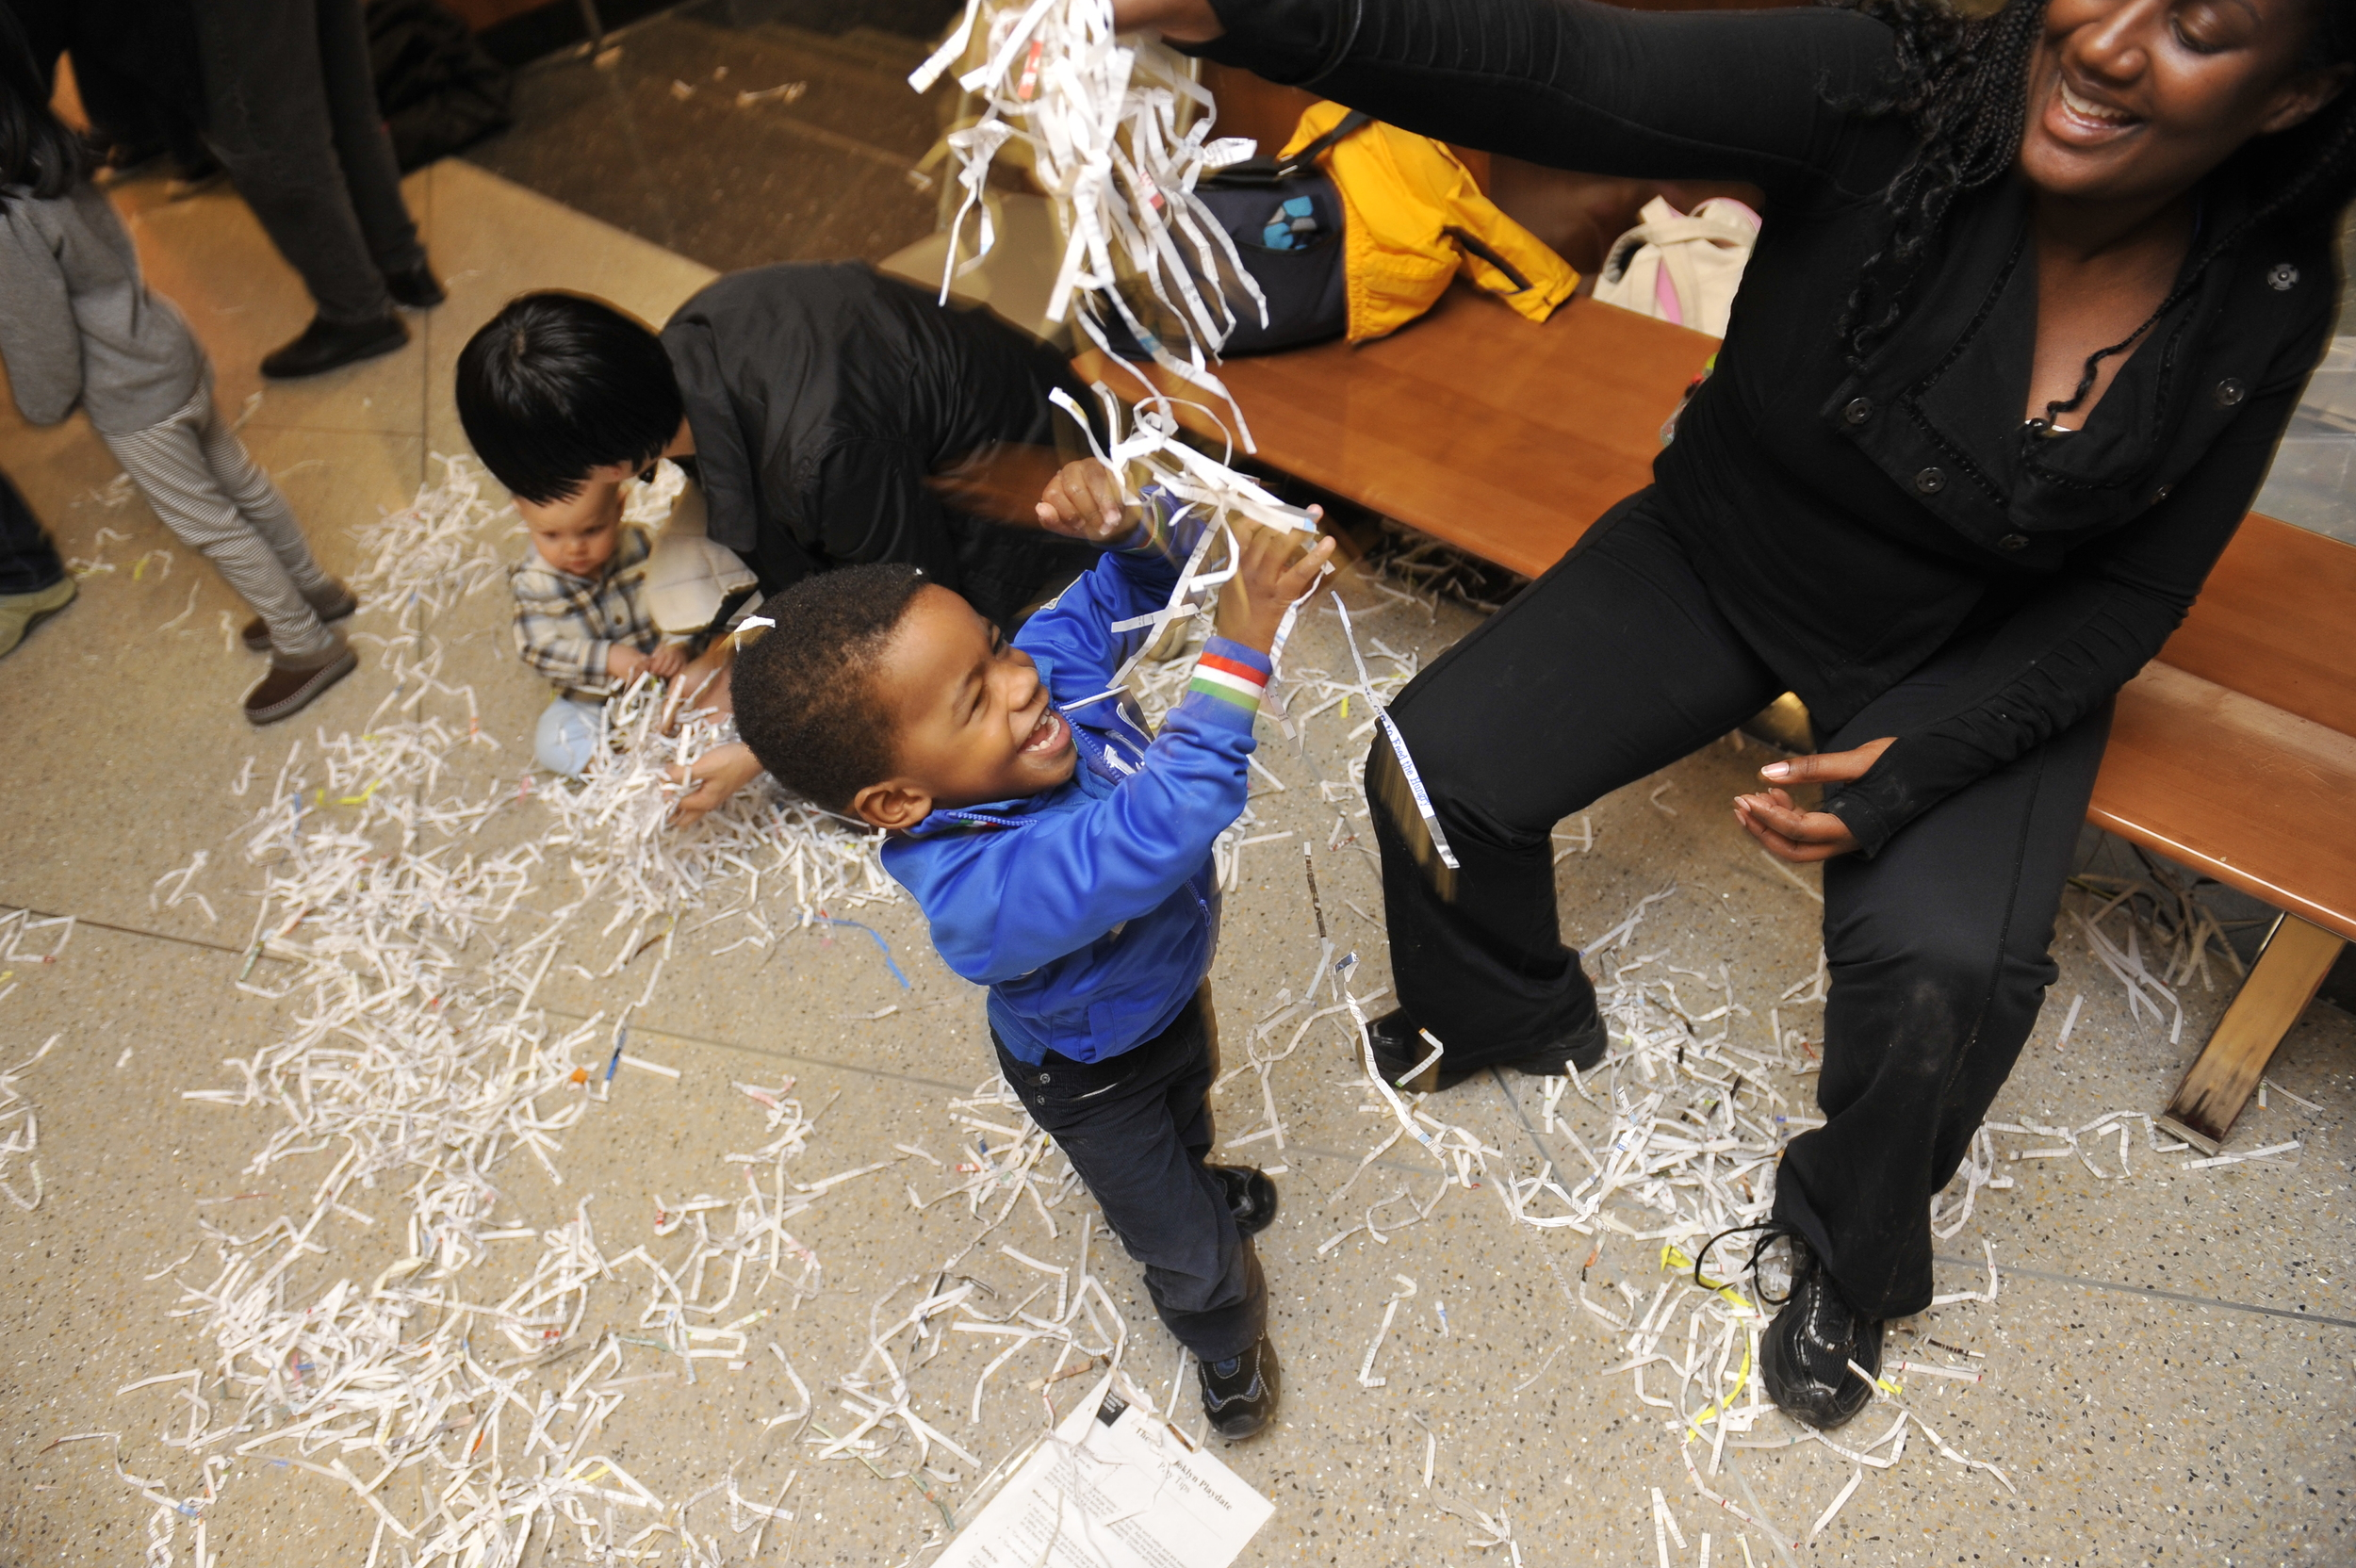 When do children have the opportunity to explore the wonders of shredded paper? All too infrequently...